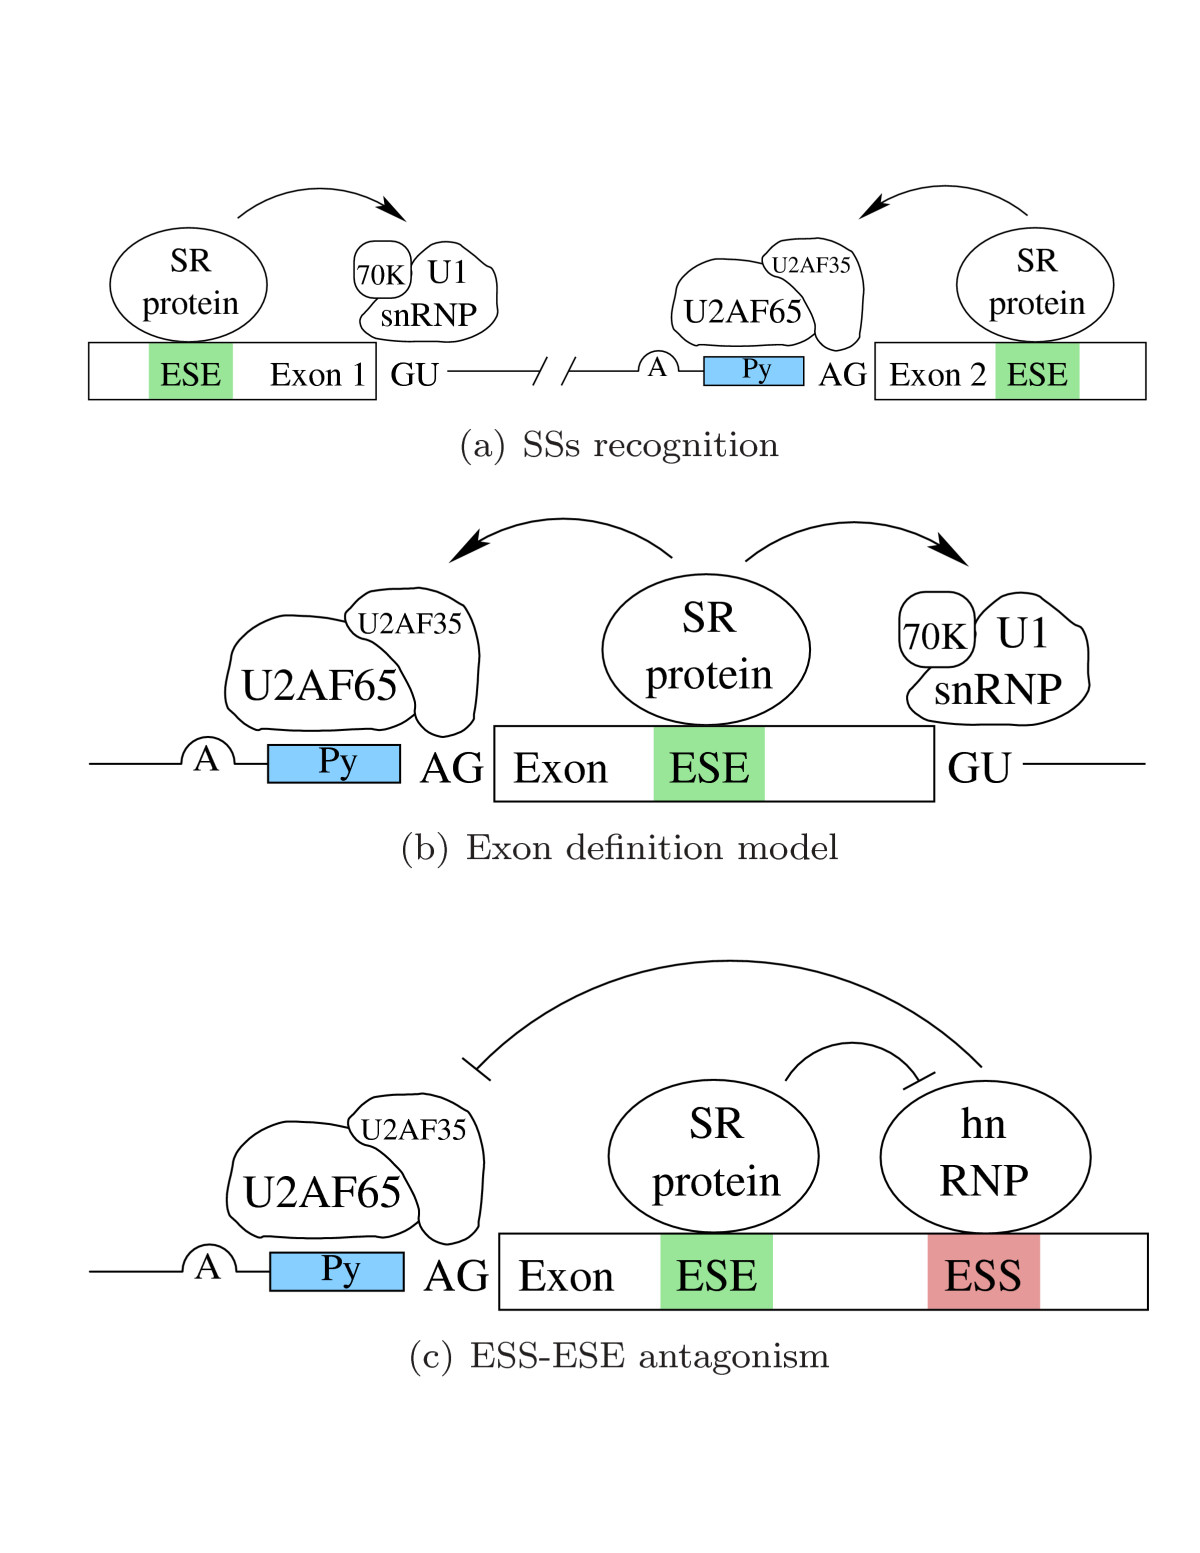 https://static-content.springer.com/image/art%3A10.1186%2F1745-6150-1-10/MediaObjects/13062_2006_Article_10_Fig2_HTML.jpg